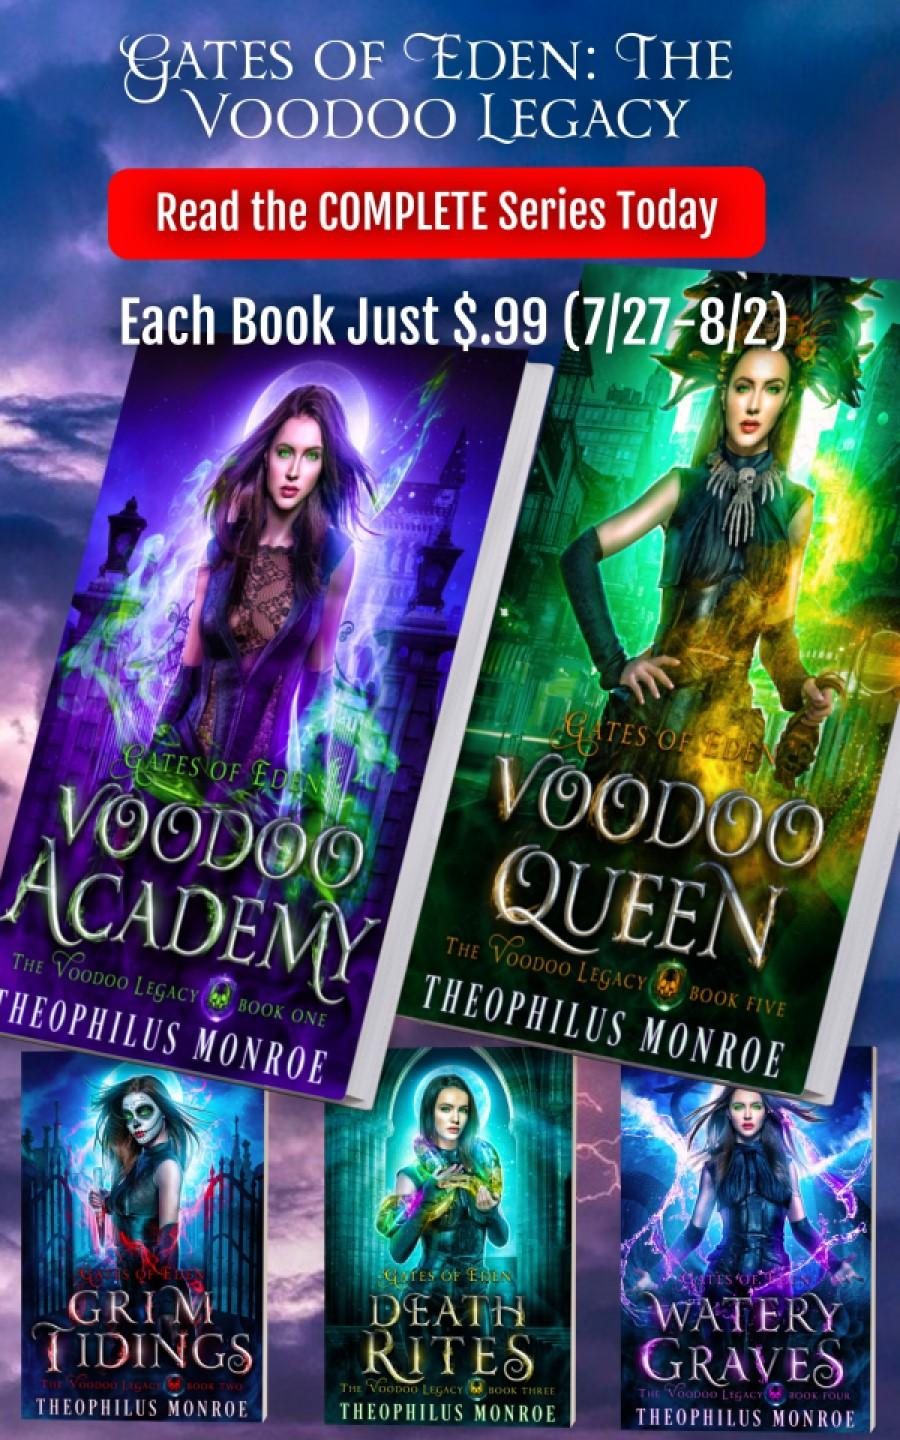 Gates of Eden: The Voodoo Legacy (5 book series)